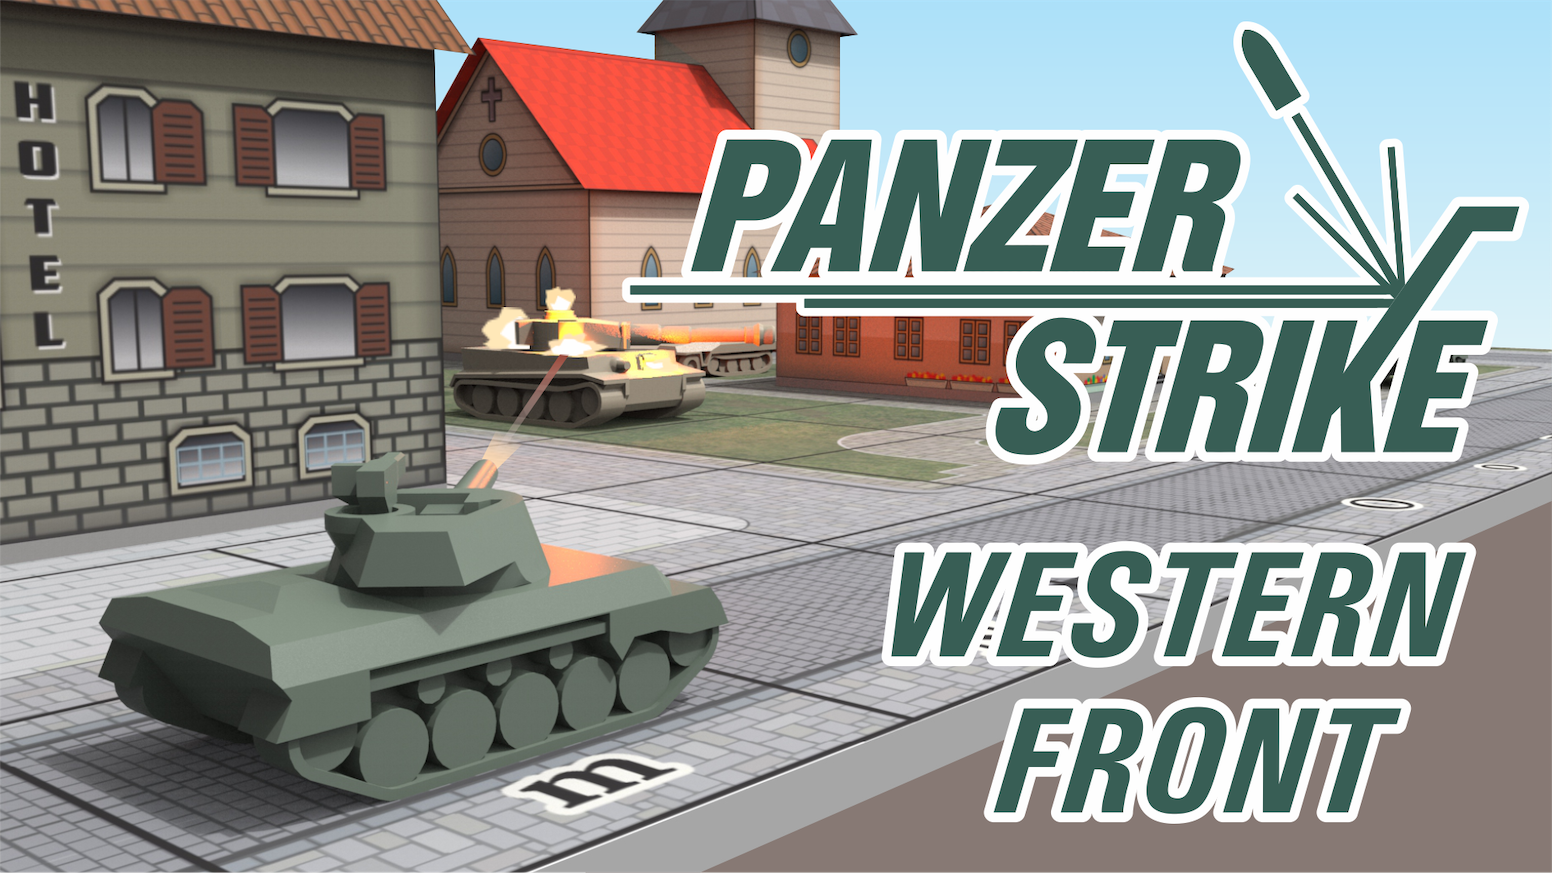 A realistic tank battle game that features miniatures and 3D scenery. Simple rules and amazing tactical depth in diverse scenarios!